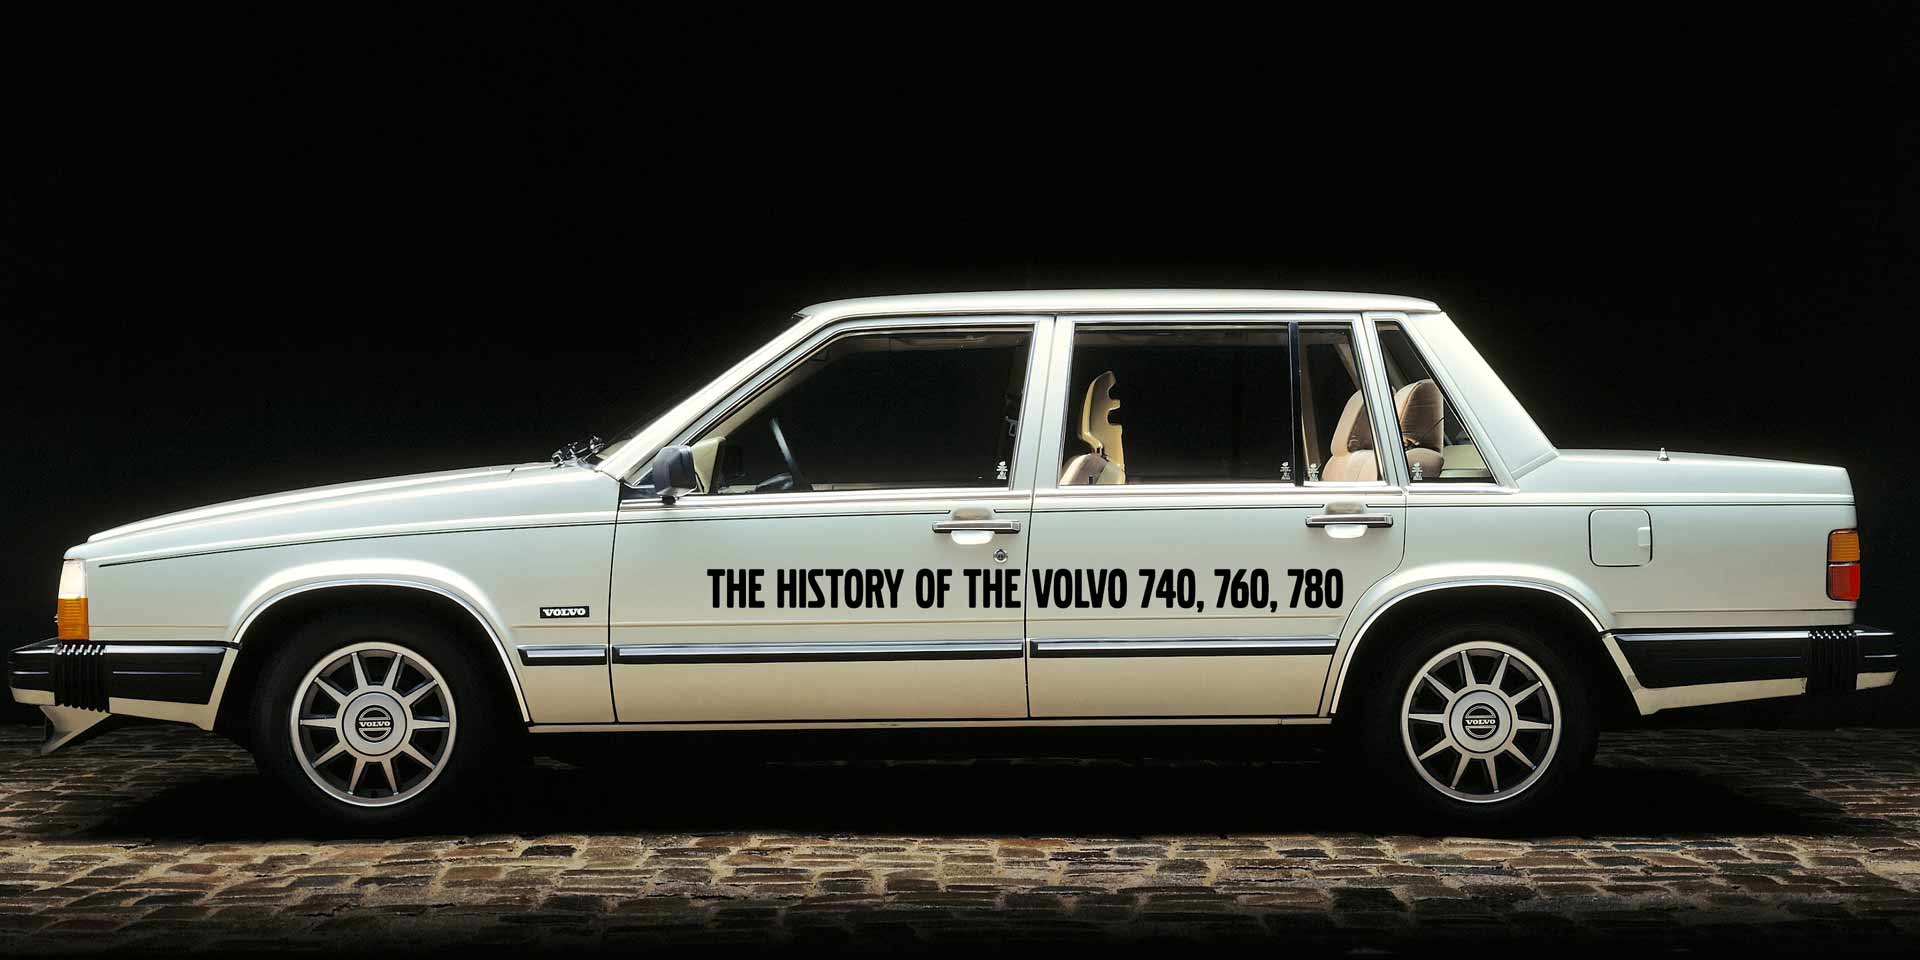 History Of The Volvo 740 760 780 -